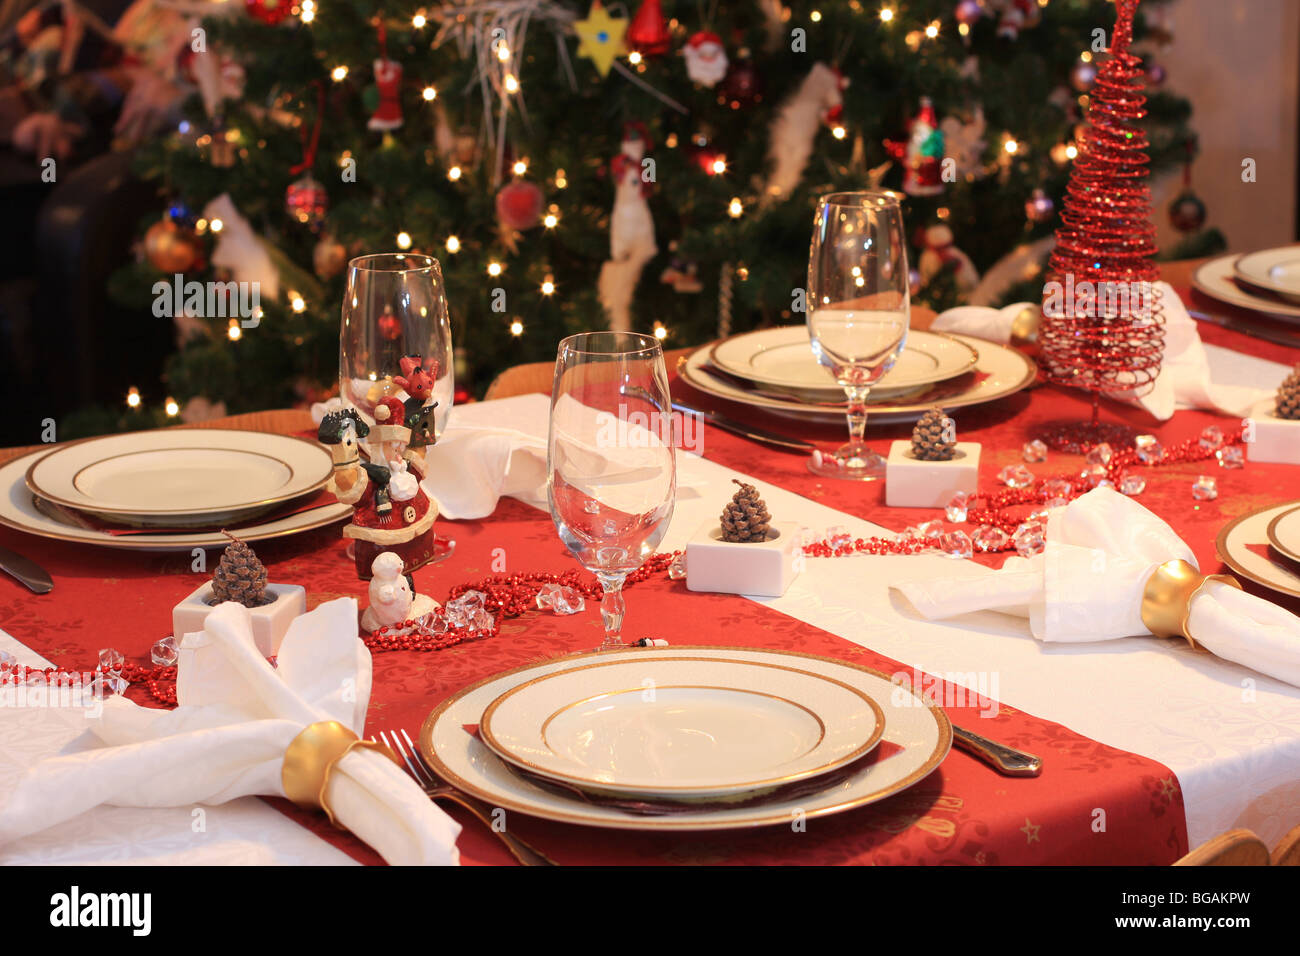 Dinner Table Background a set table for christmas night dinner, tree in background stock